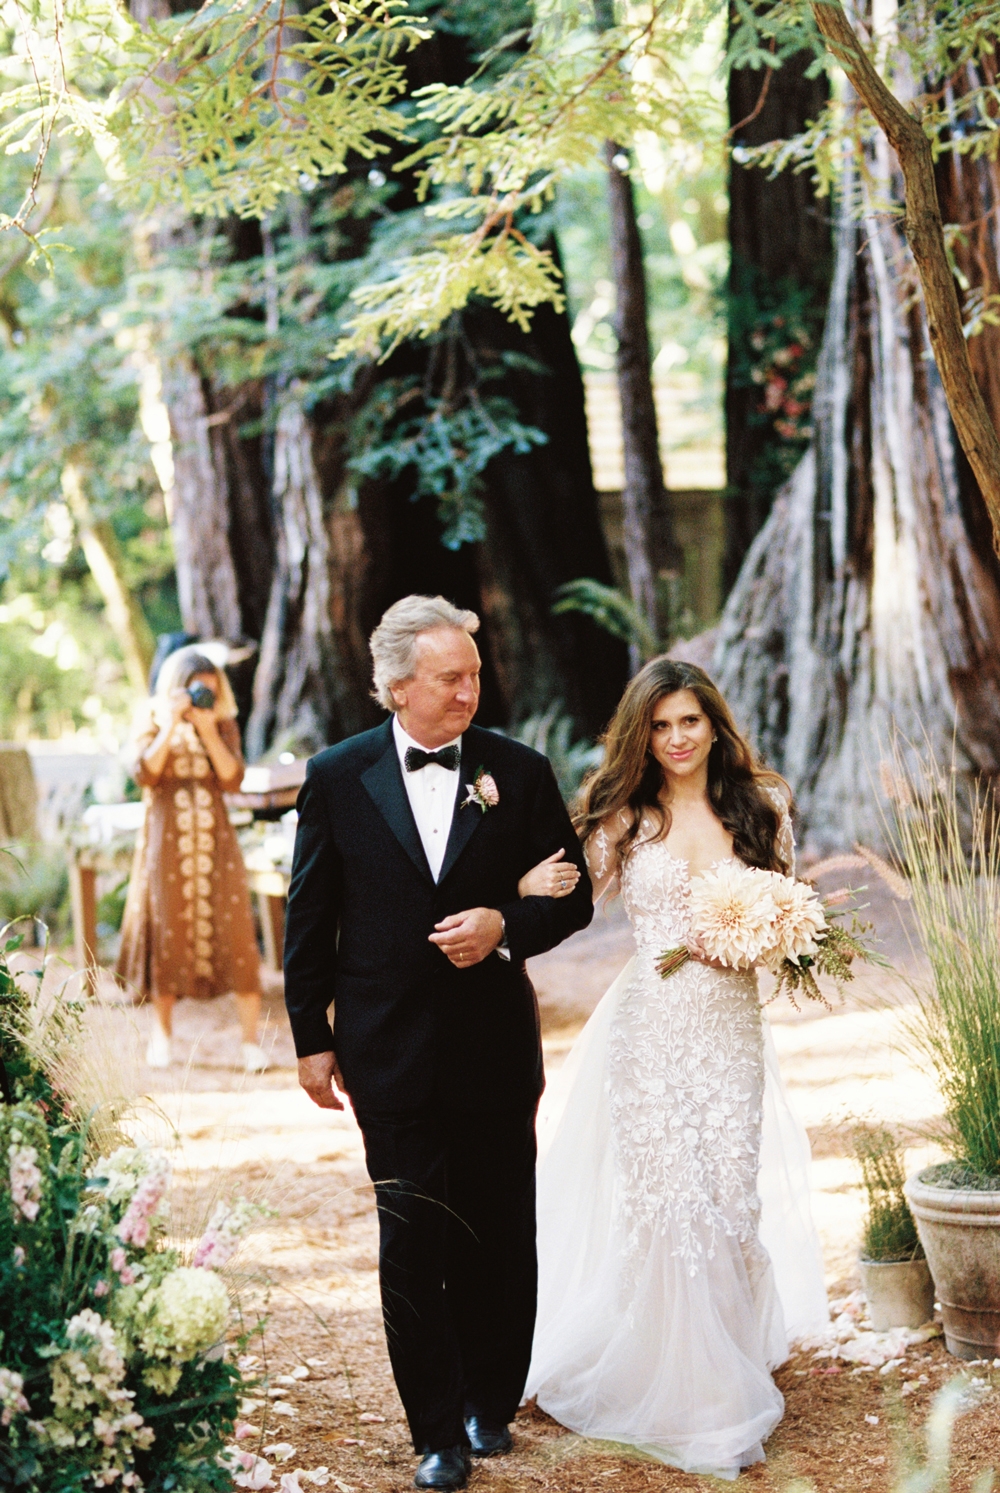 father of the bride walking bride down outdoor forest wedding aisle